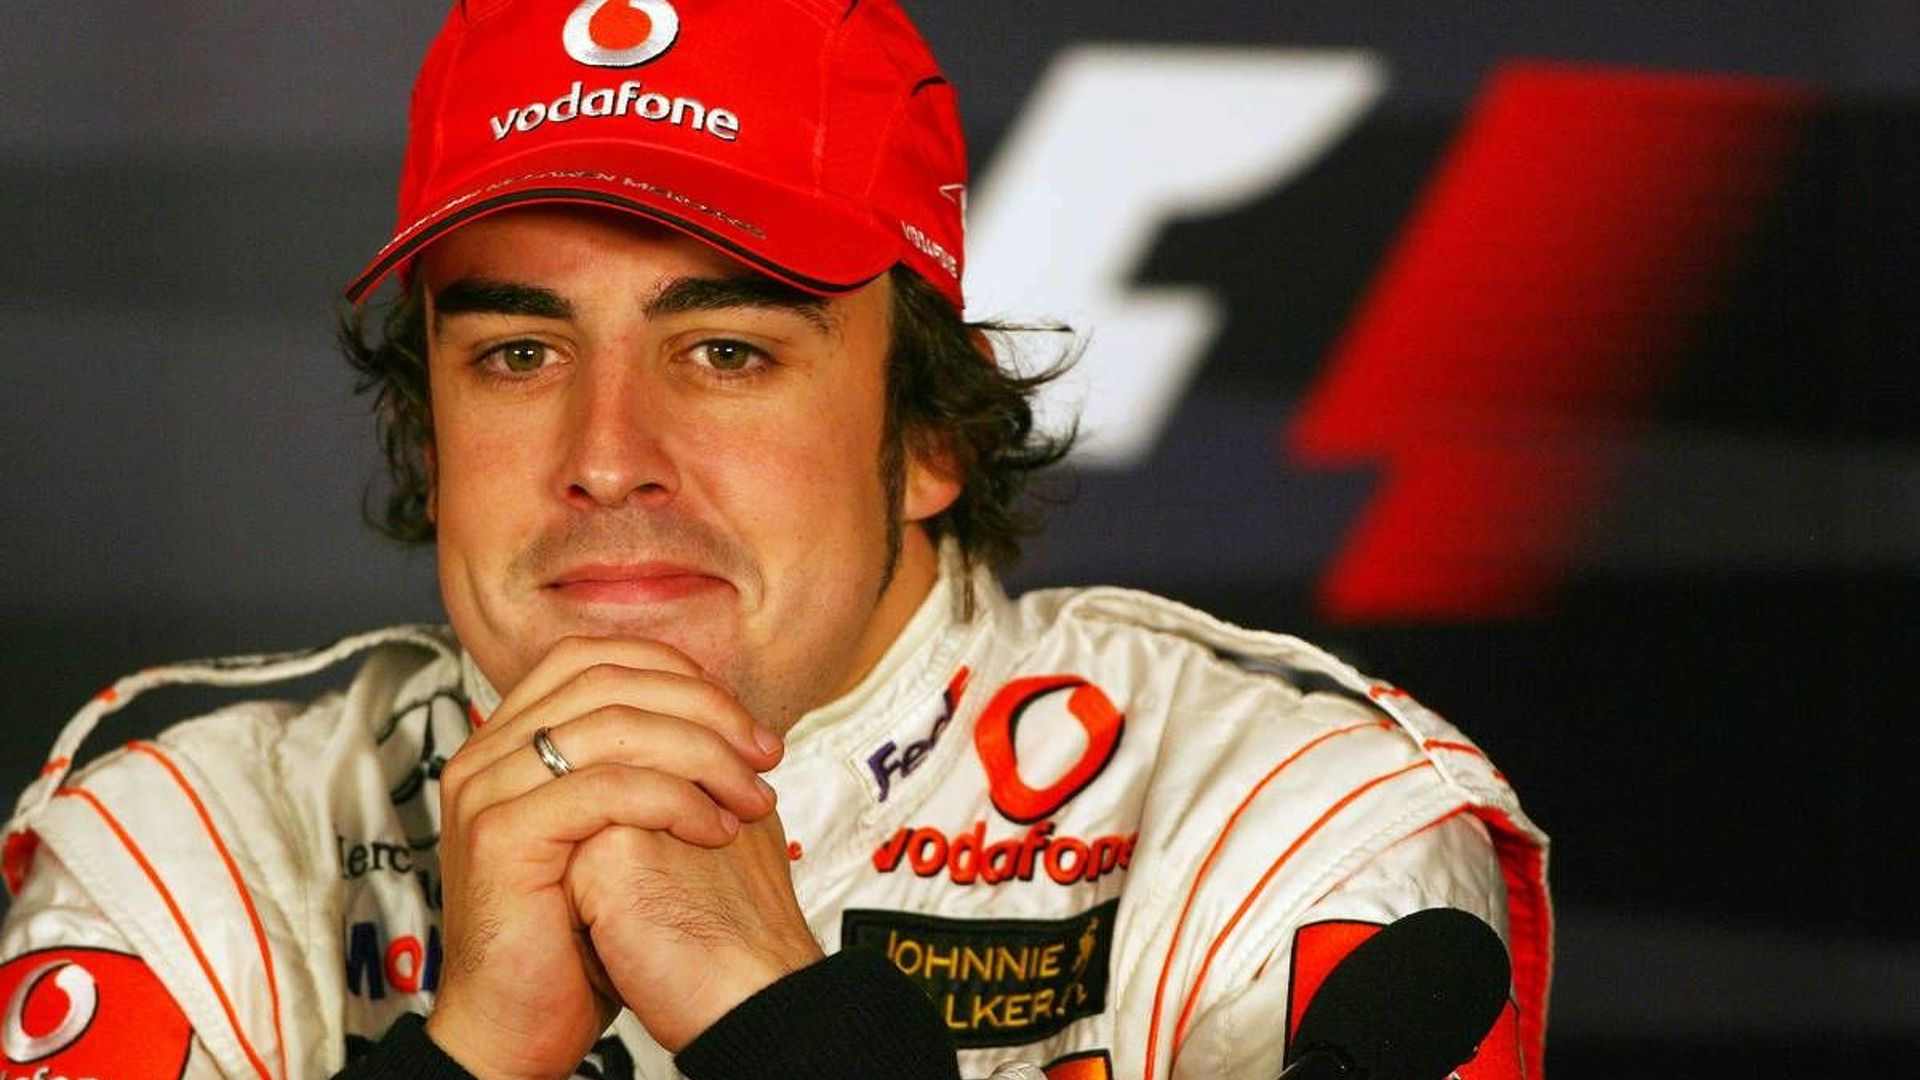 Alonso didn't demand to be McLaren no.1 - manager